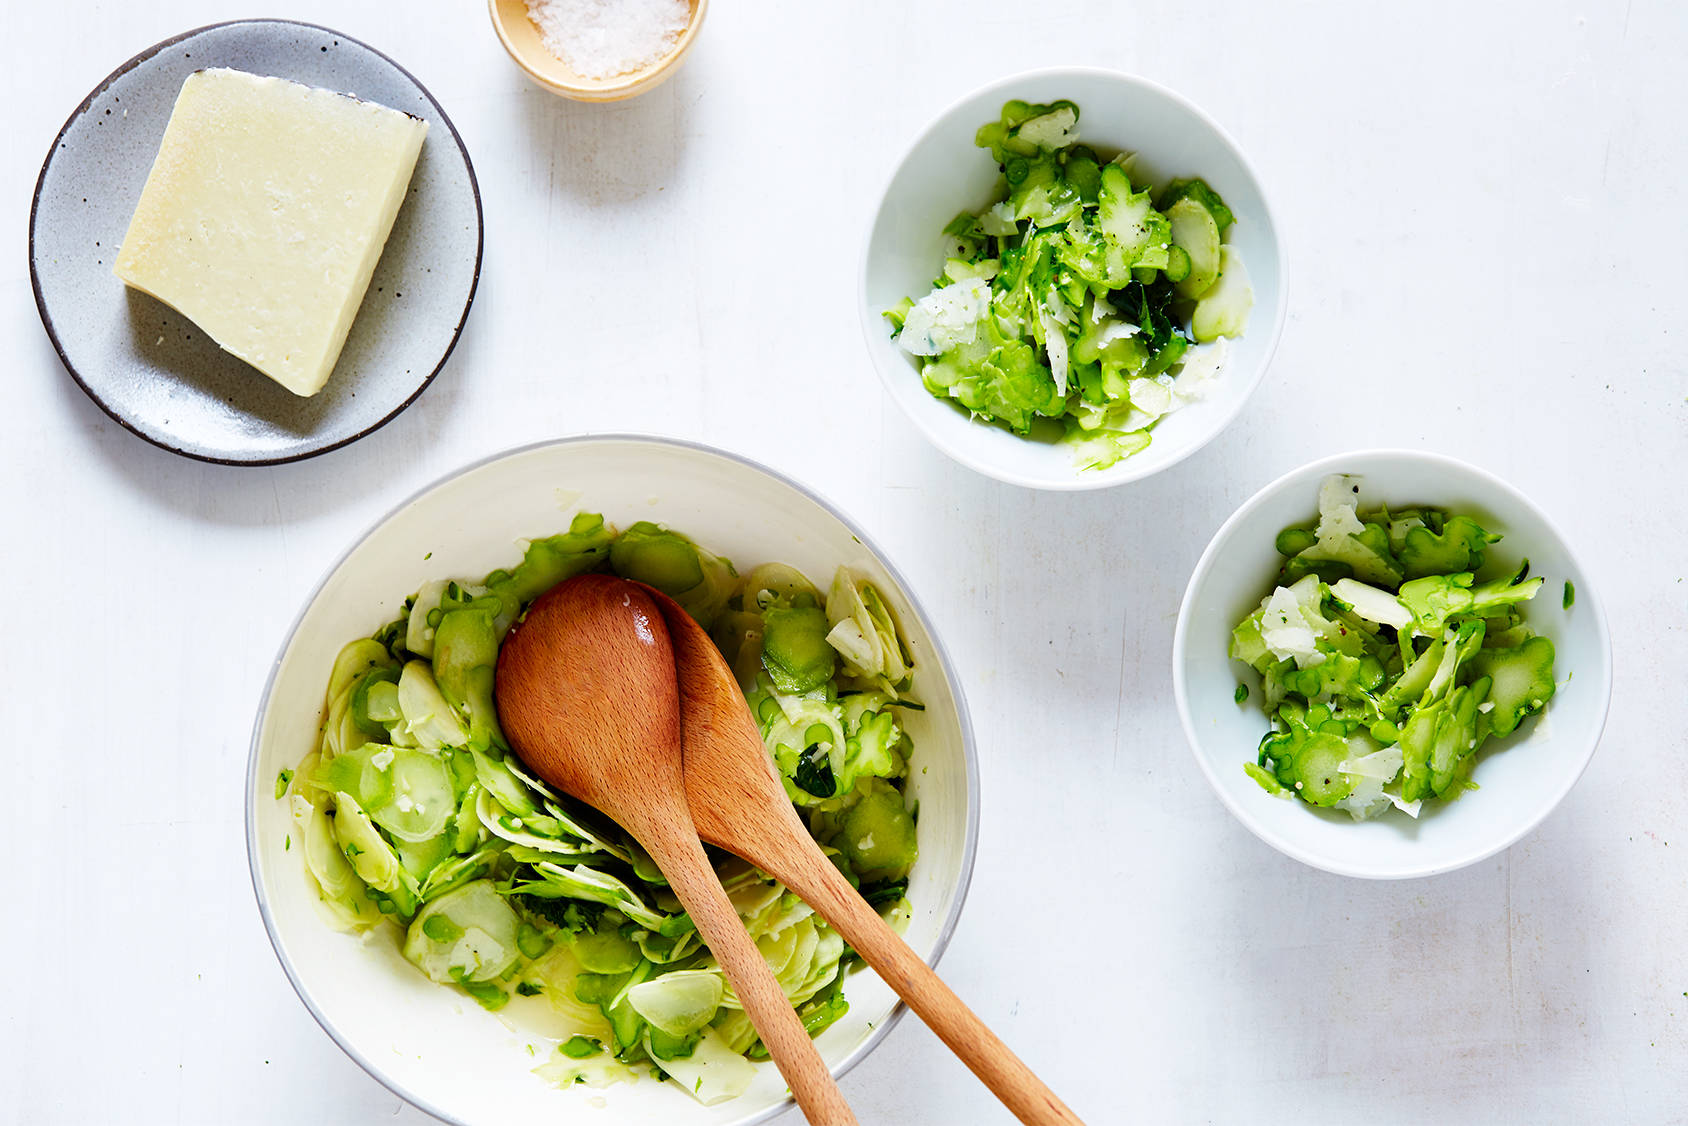 Broccoli stem salad with lemon & pecorino.